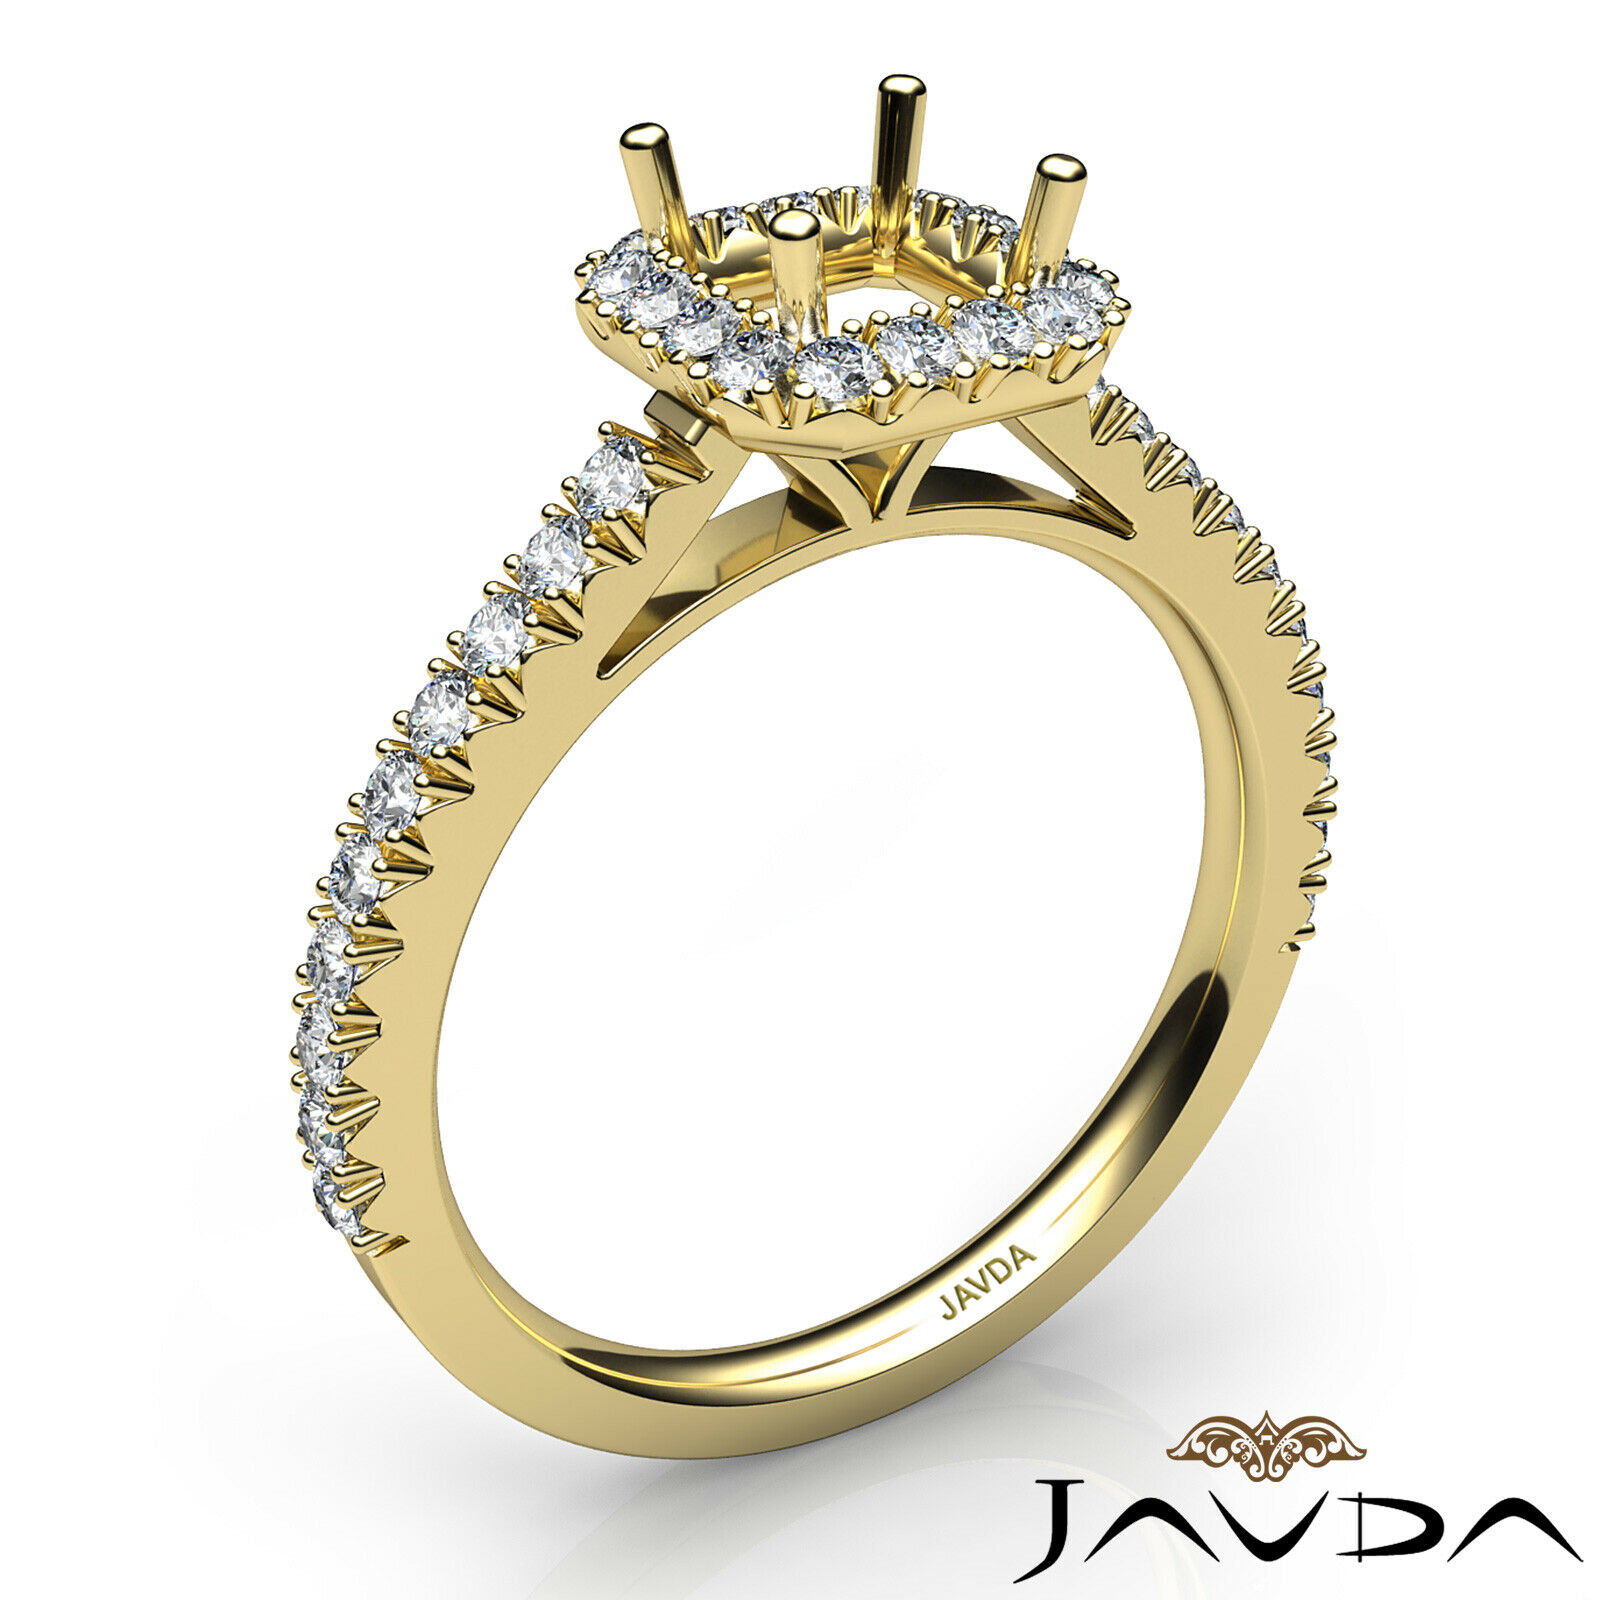 French V Cut Pave High Quality Diamond Engagement Asscher Semi Mount Ring 1Ct. - $2,029.00